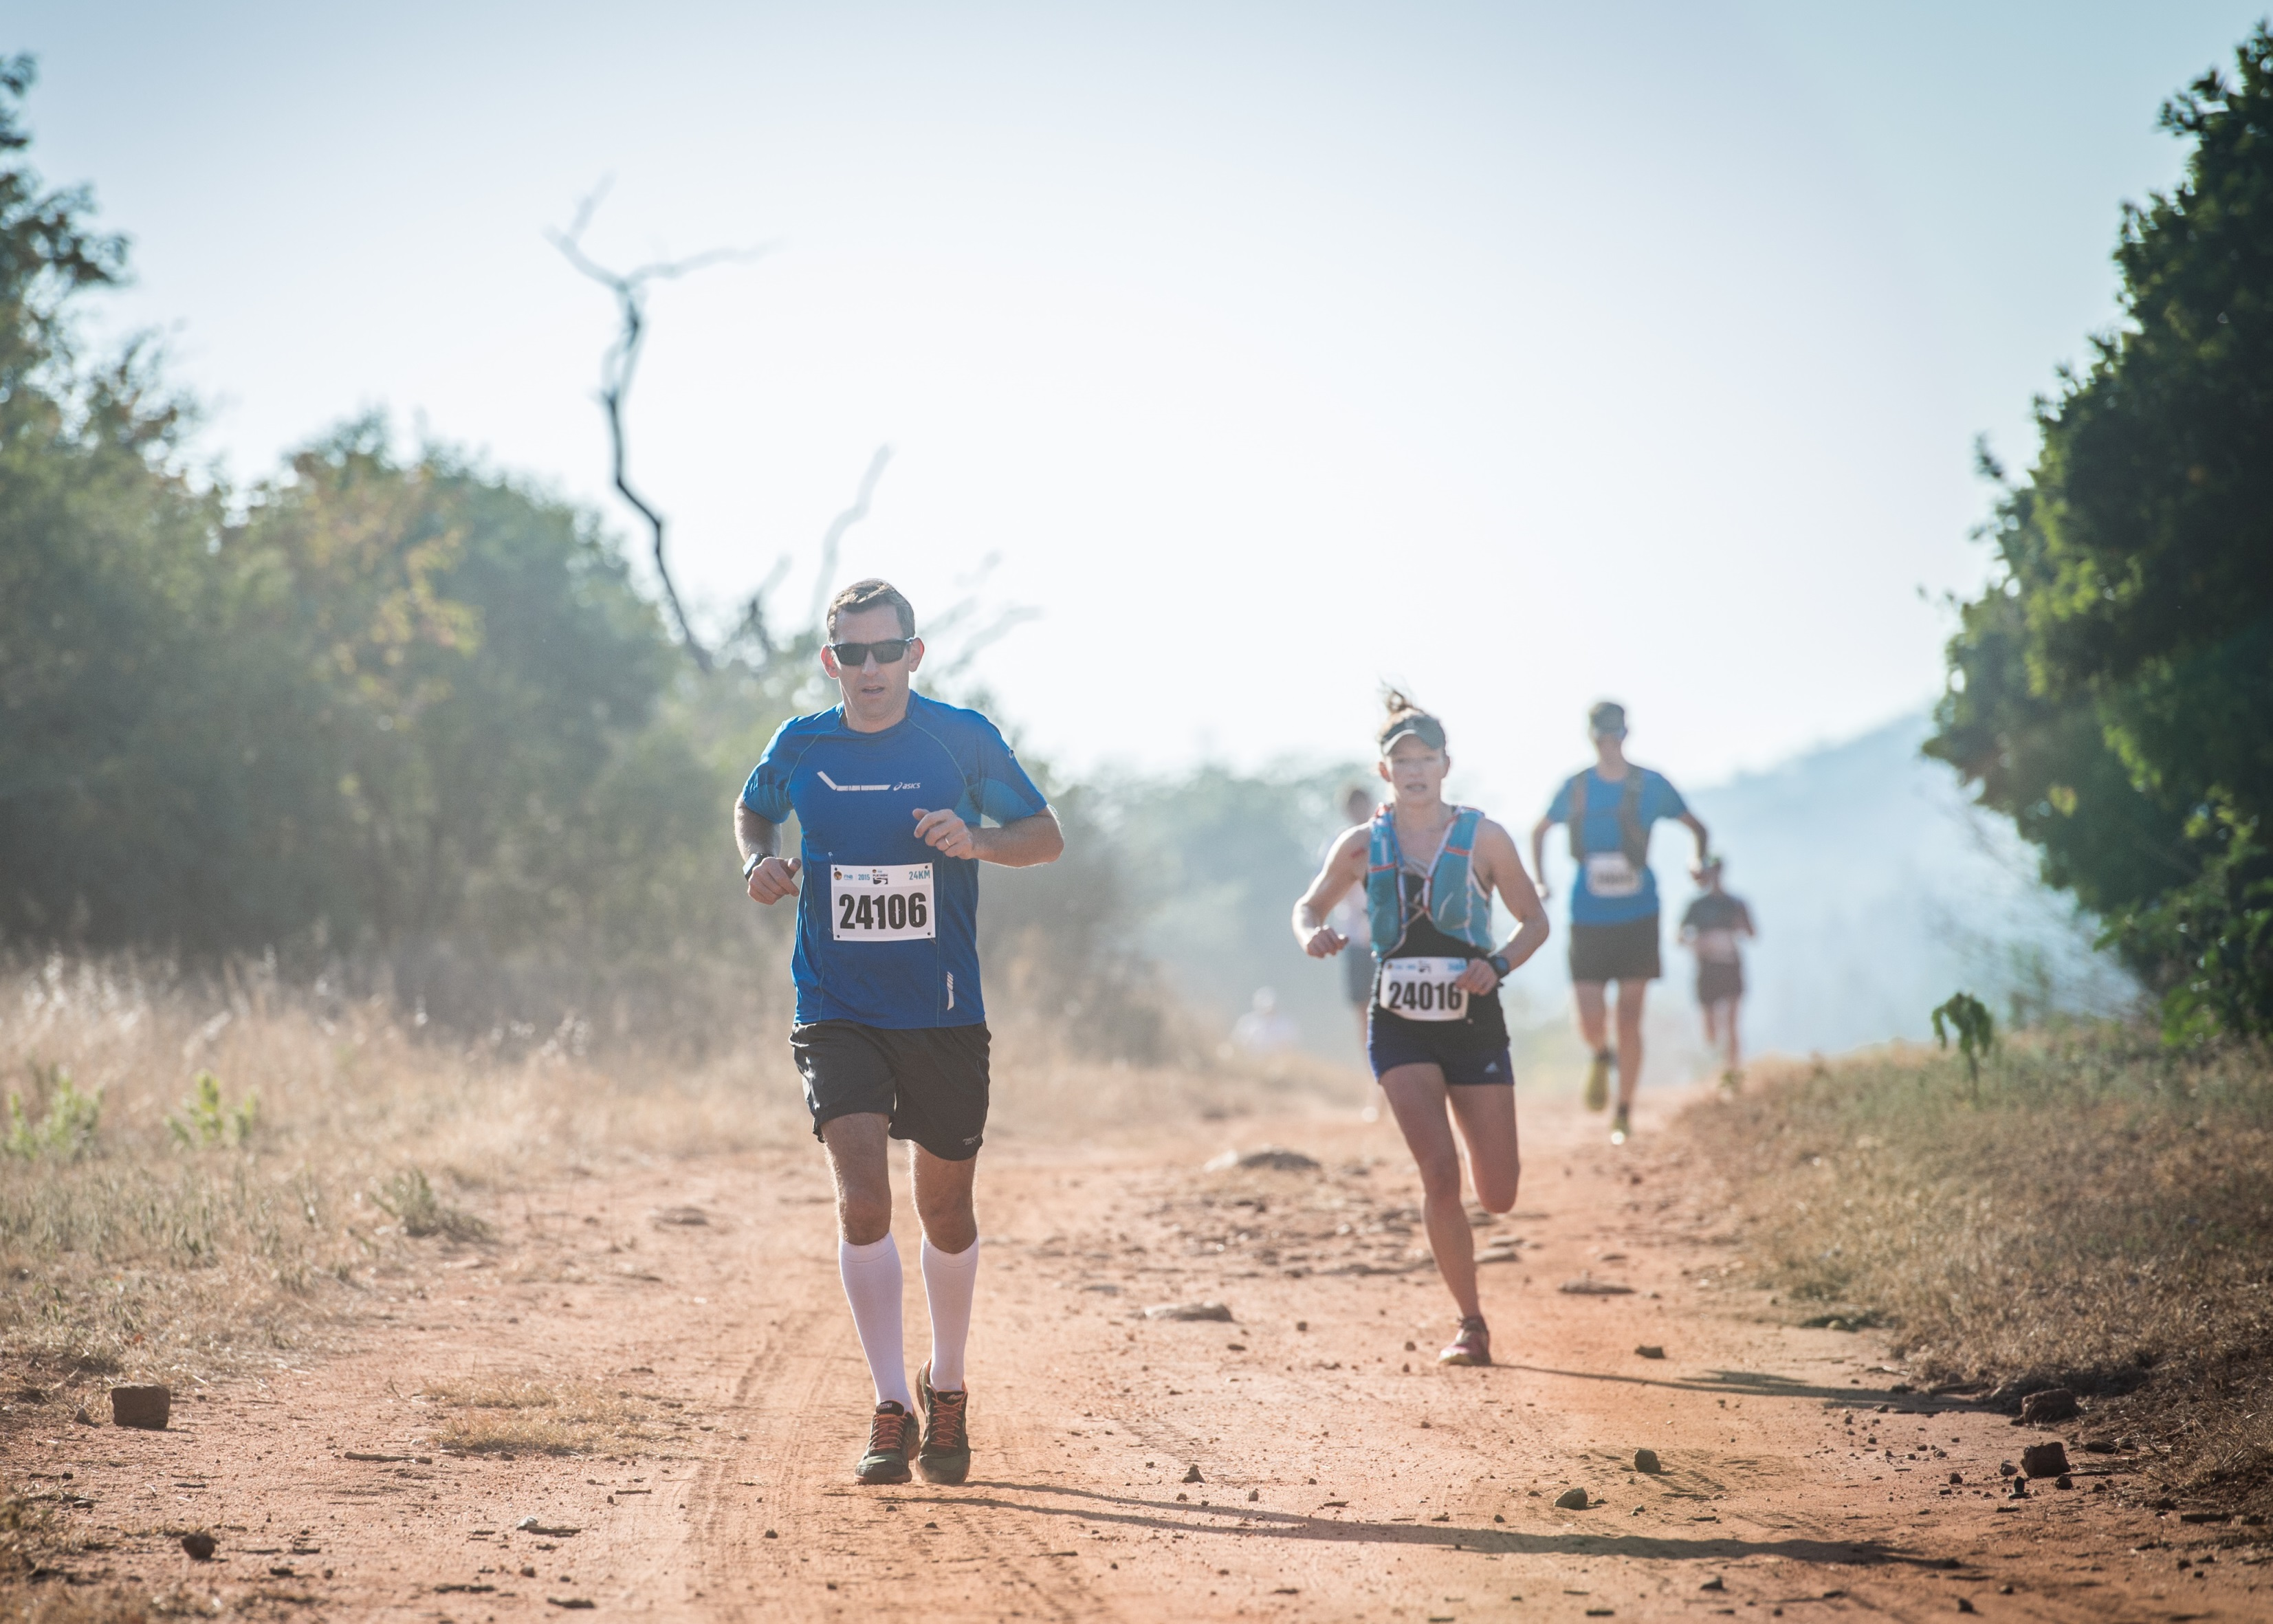 Trail running enthusiasts can look forward to experiencing the true beauty of the Magaliesberg at the 4th annual FNB Platinum Trail Run that will take place at the ATKV in Buffelspoort on Sunday, 22 May 2016.  Seen here:  Trail runners in action at the 2015 FNB Platinum Trail Run.  Photo Credit:  Tobias Ginsberg